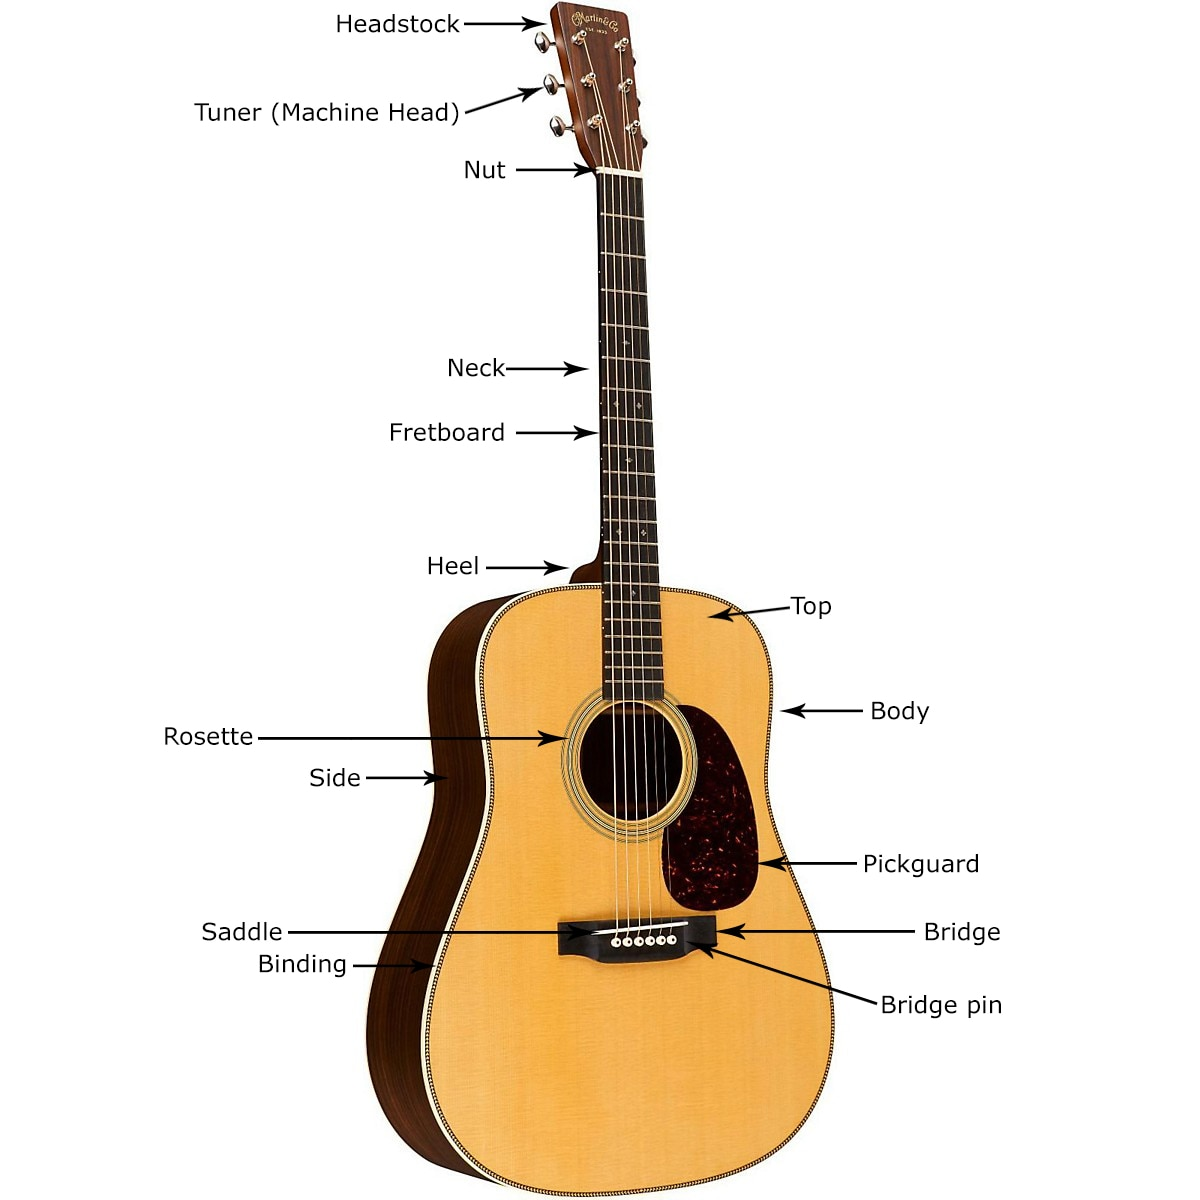 Buying Guide: How to Choose an Acoustic Guitar | The HUB